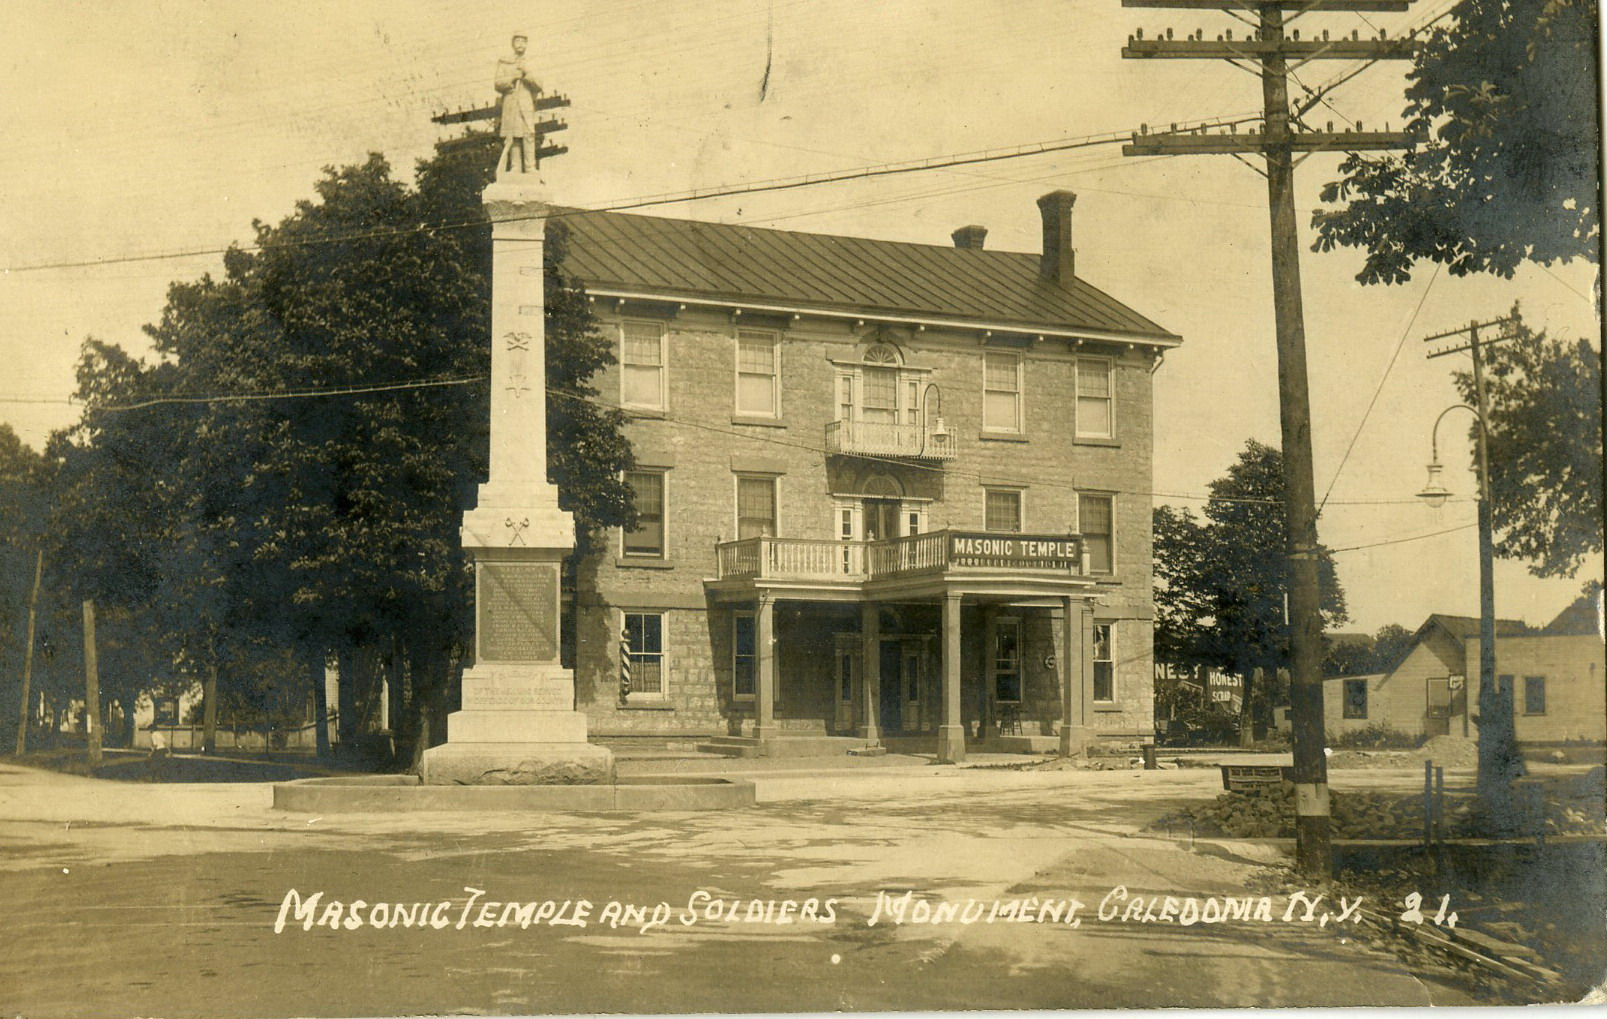 1920 Caledonia Masonic Temple